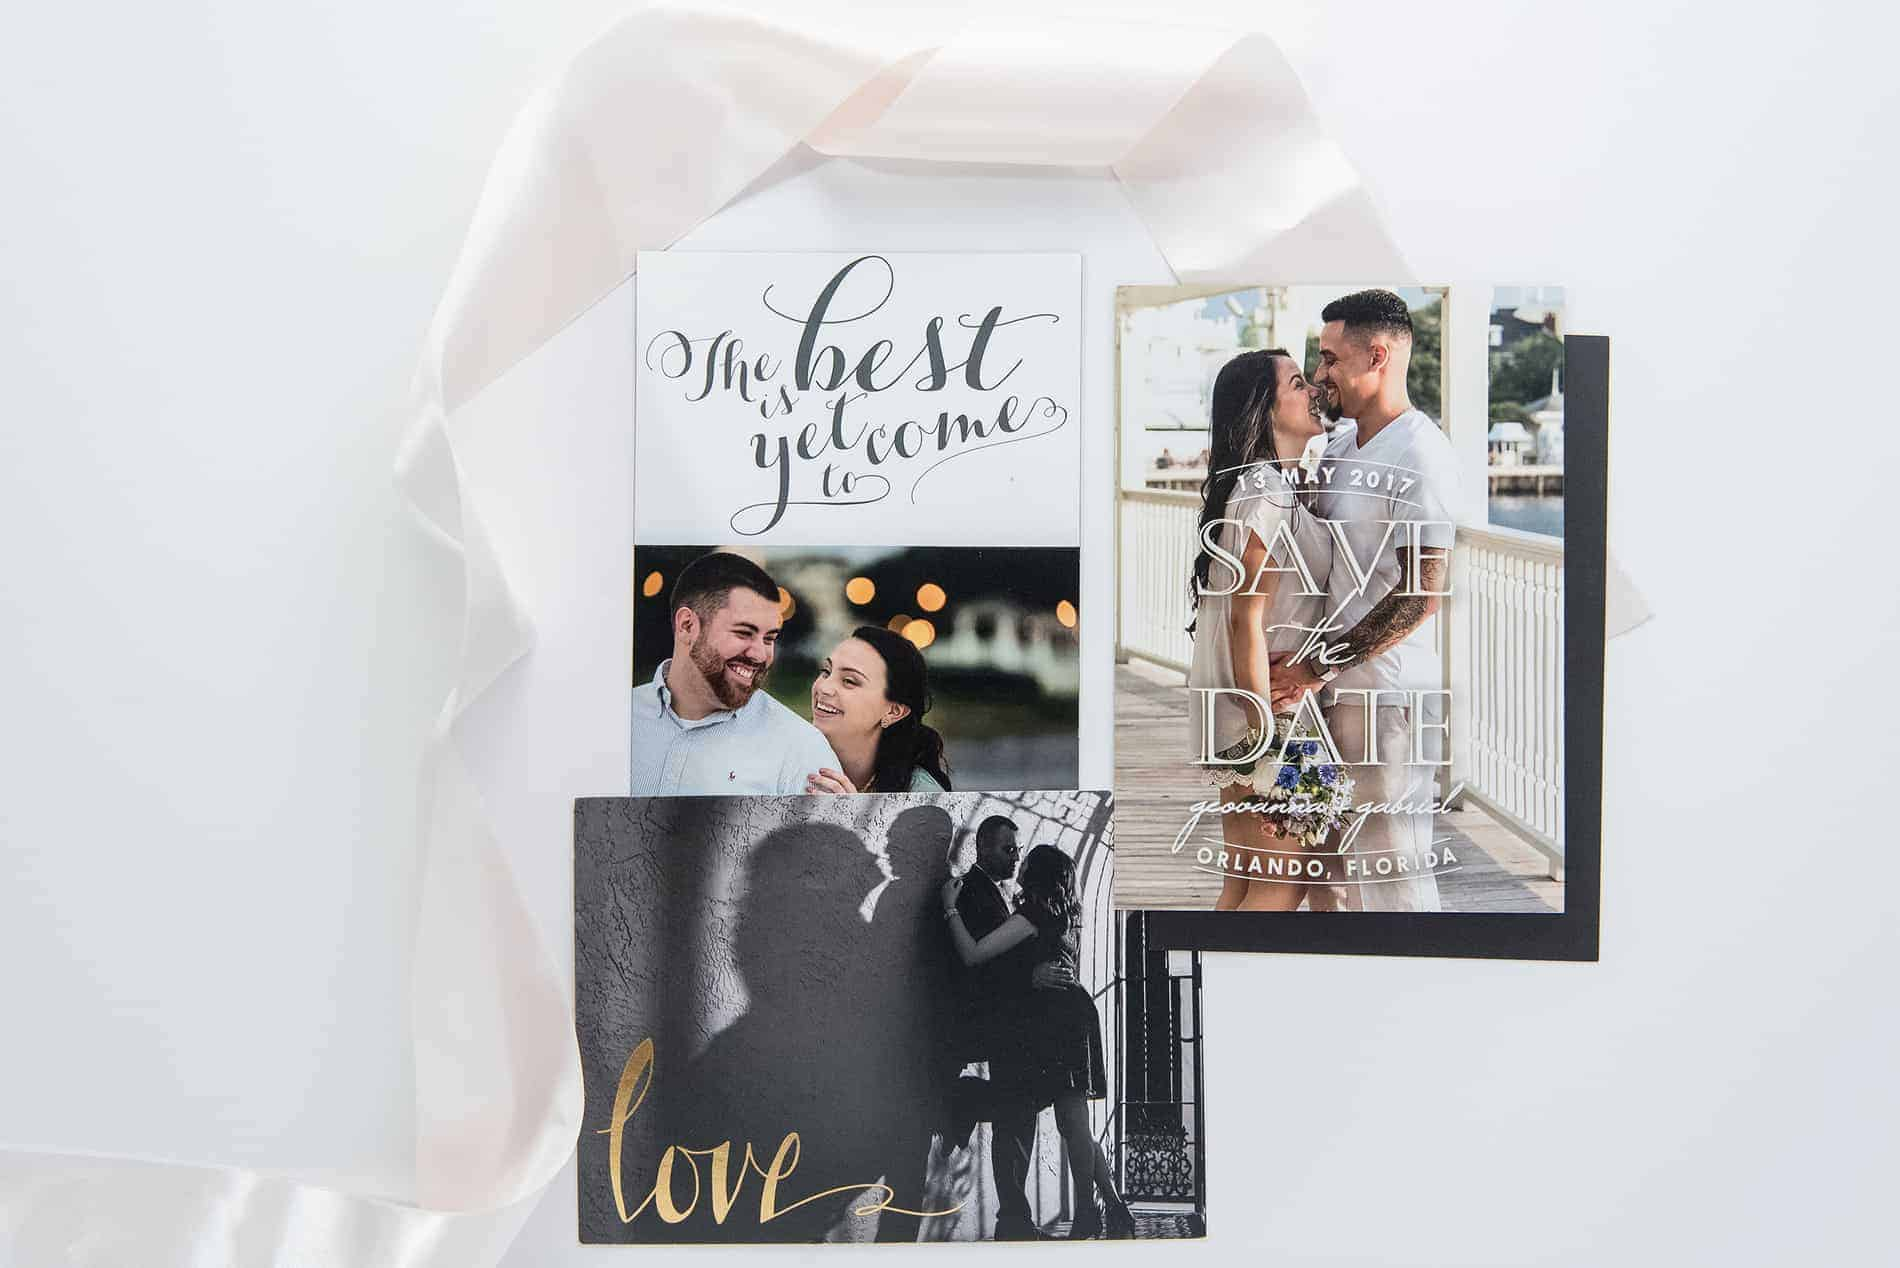 Always get your engagement photos made into Save the Dates